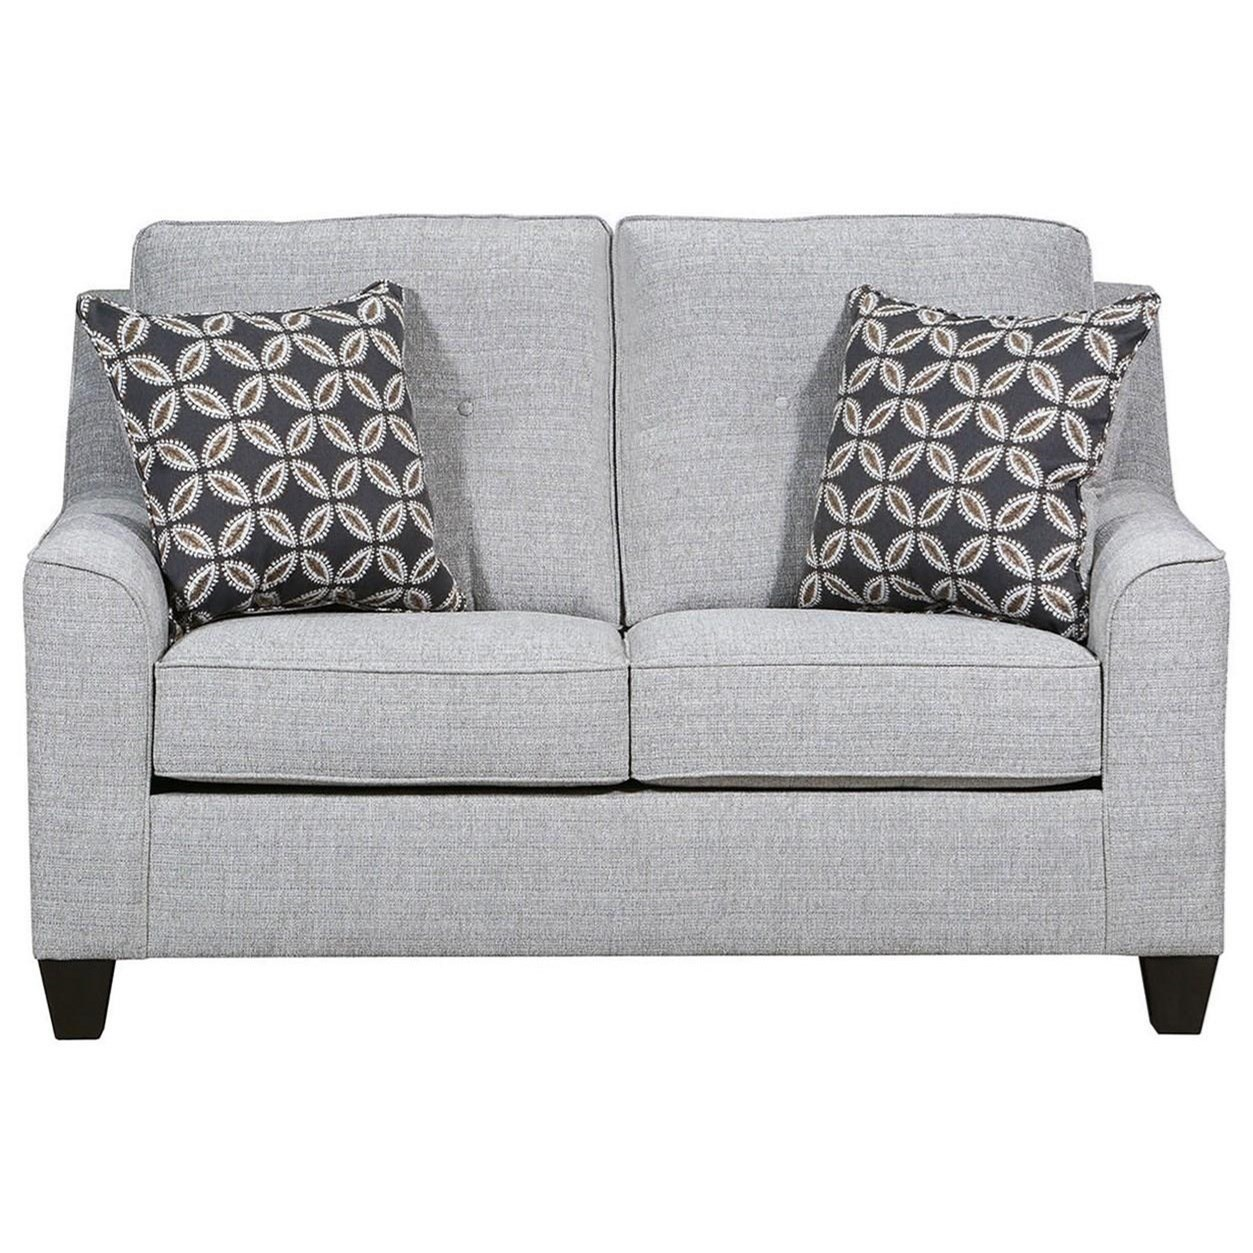 2019 Stationary Loveseat by Lane at Story & Lee Furniture